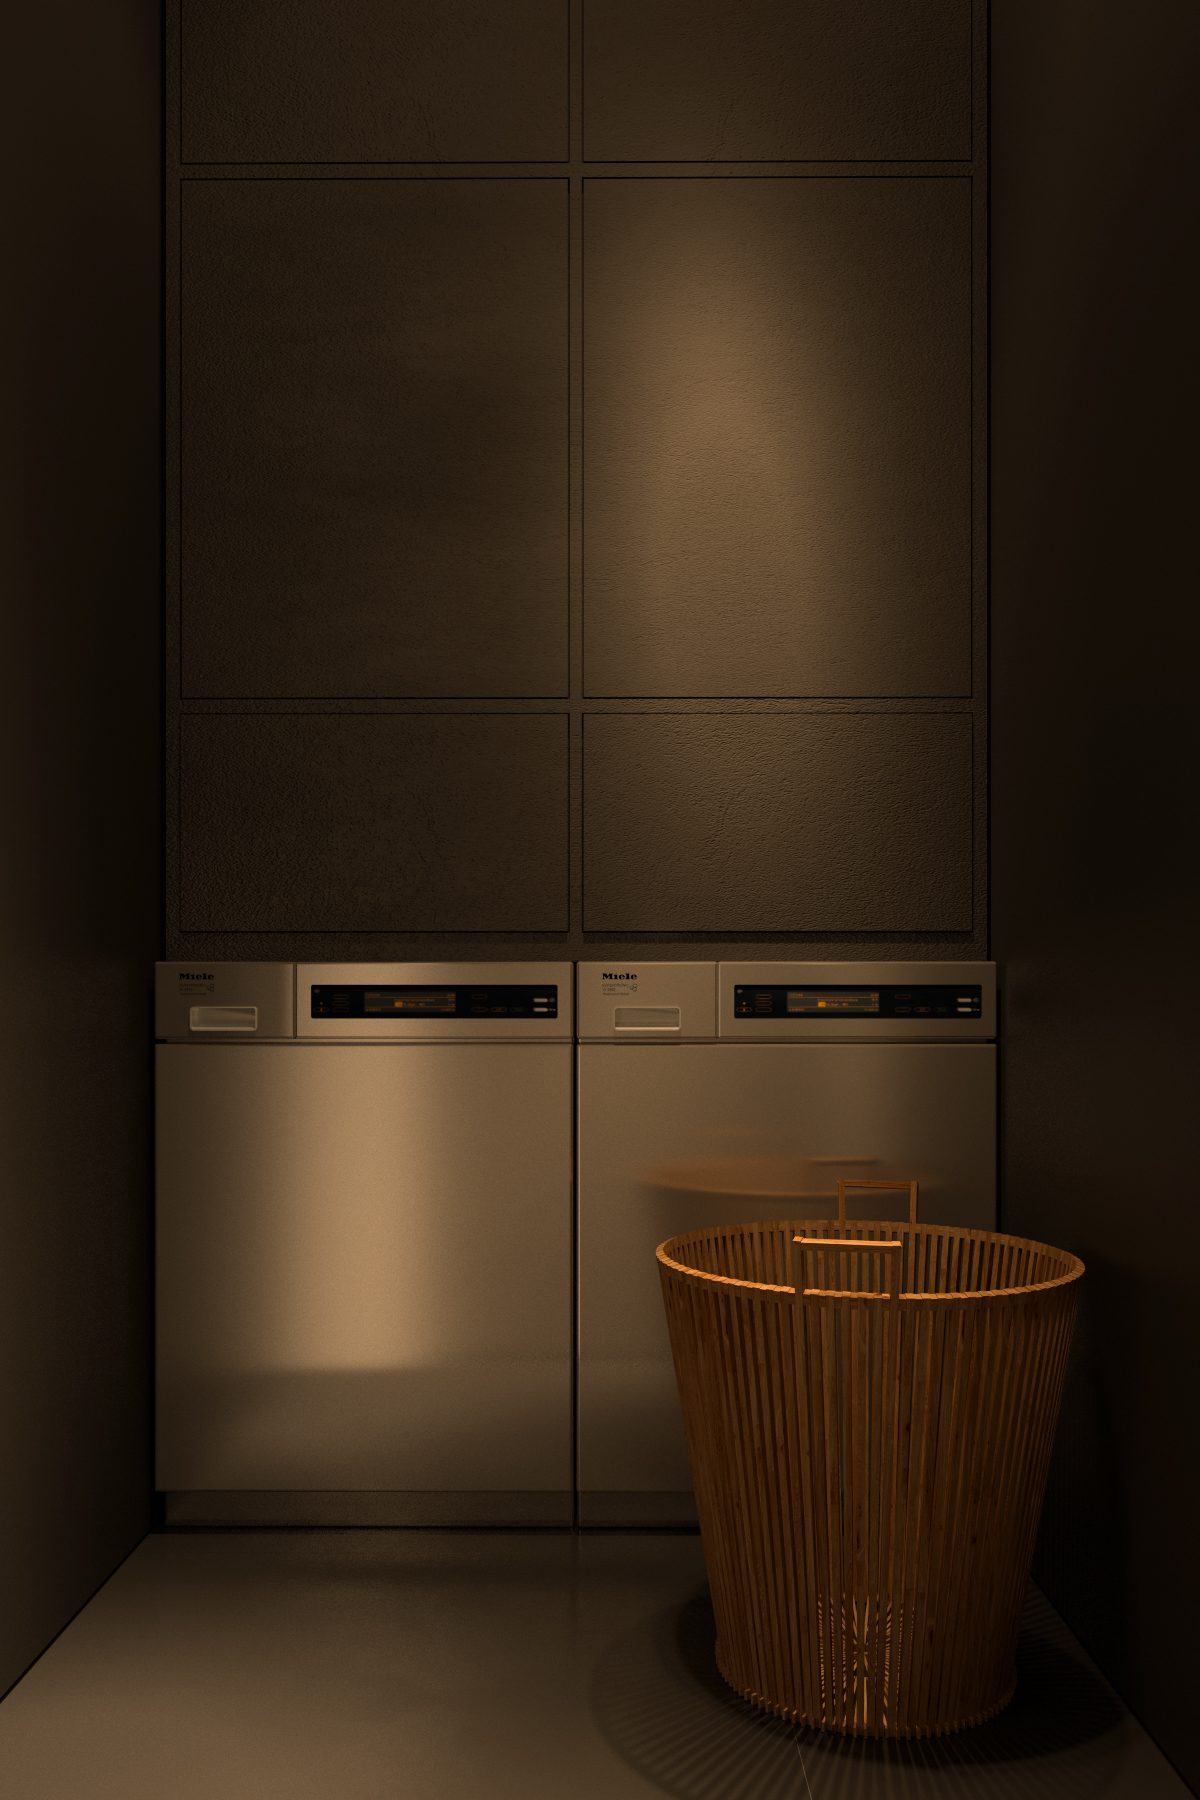 Laundry room design at home